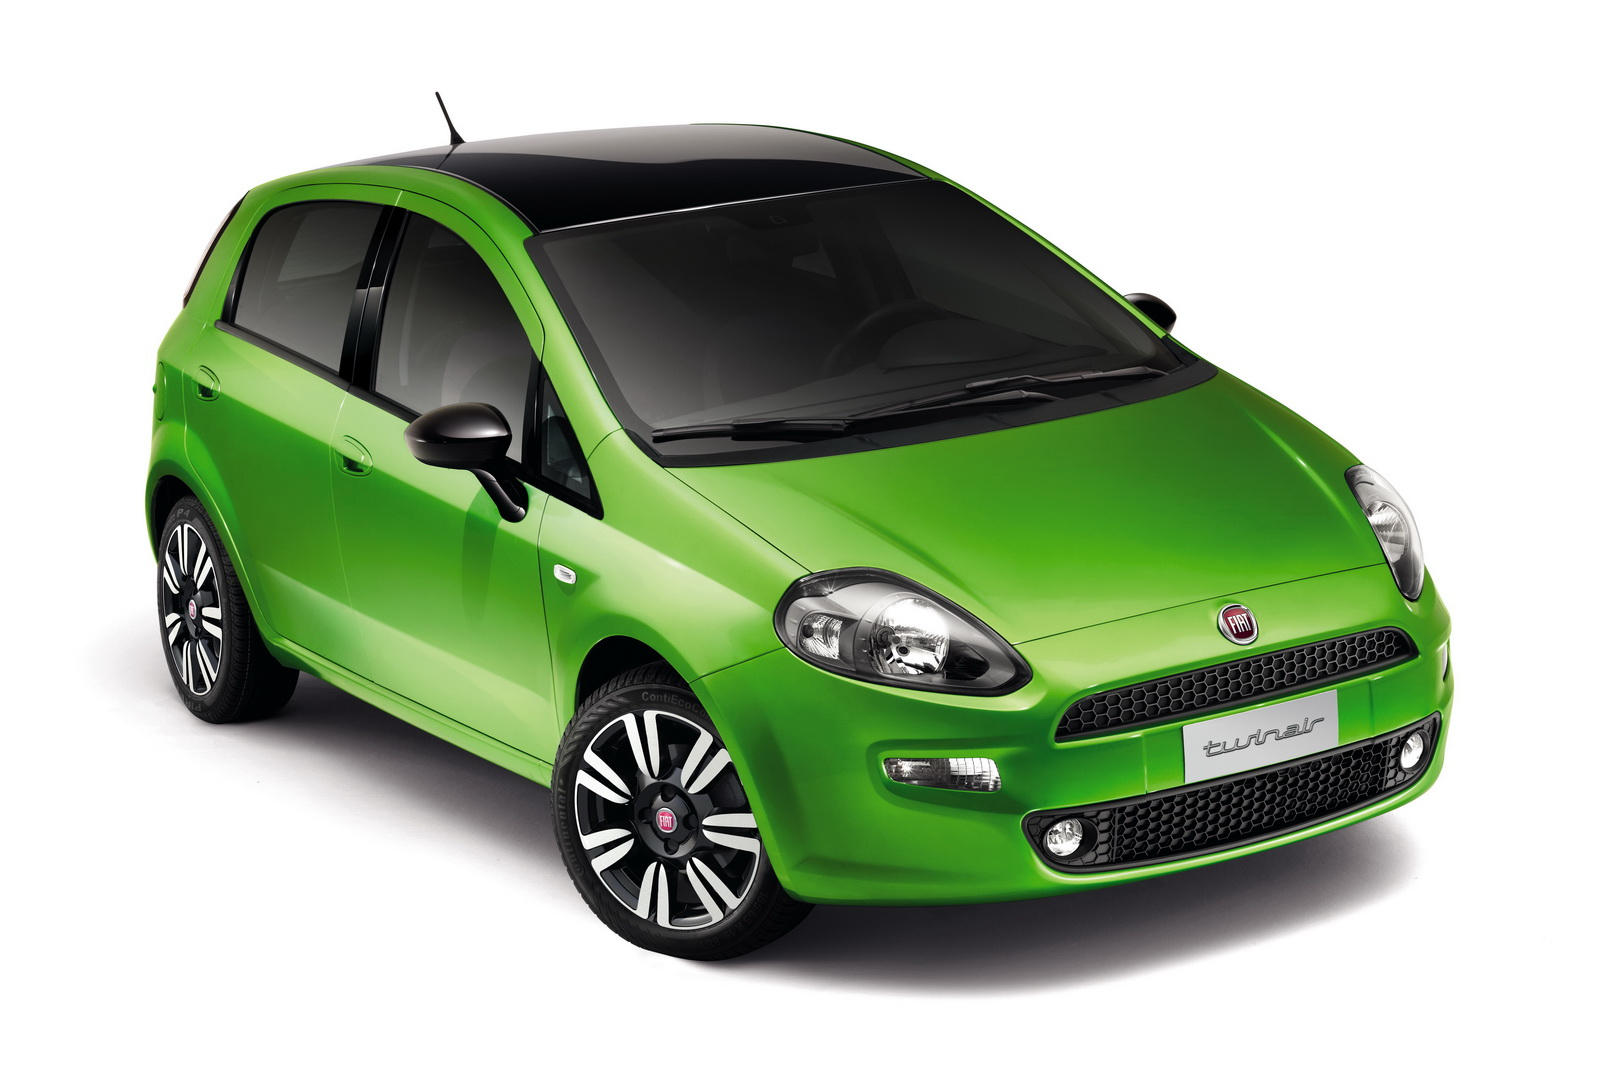 2012 FIAT PUNTO 2012 FIAT PUNTO IS NOW UPGRADED WITH85HP 0.9 LITER TWINAIR AND 1.3 MULTIJET ENGINES